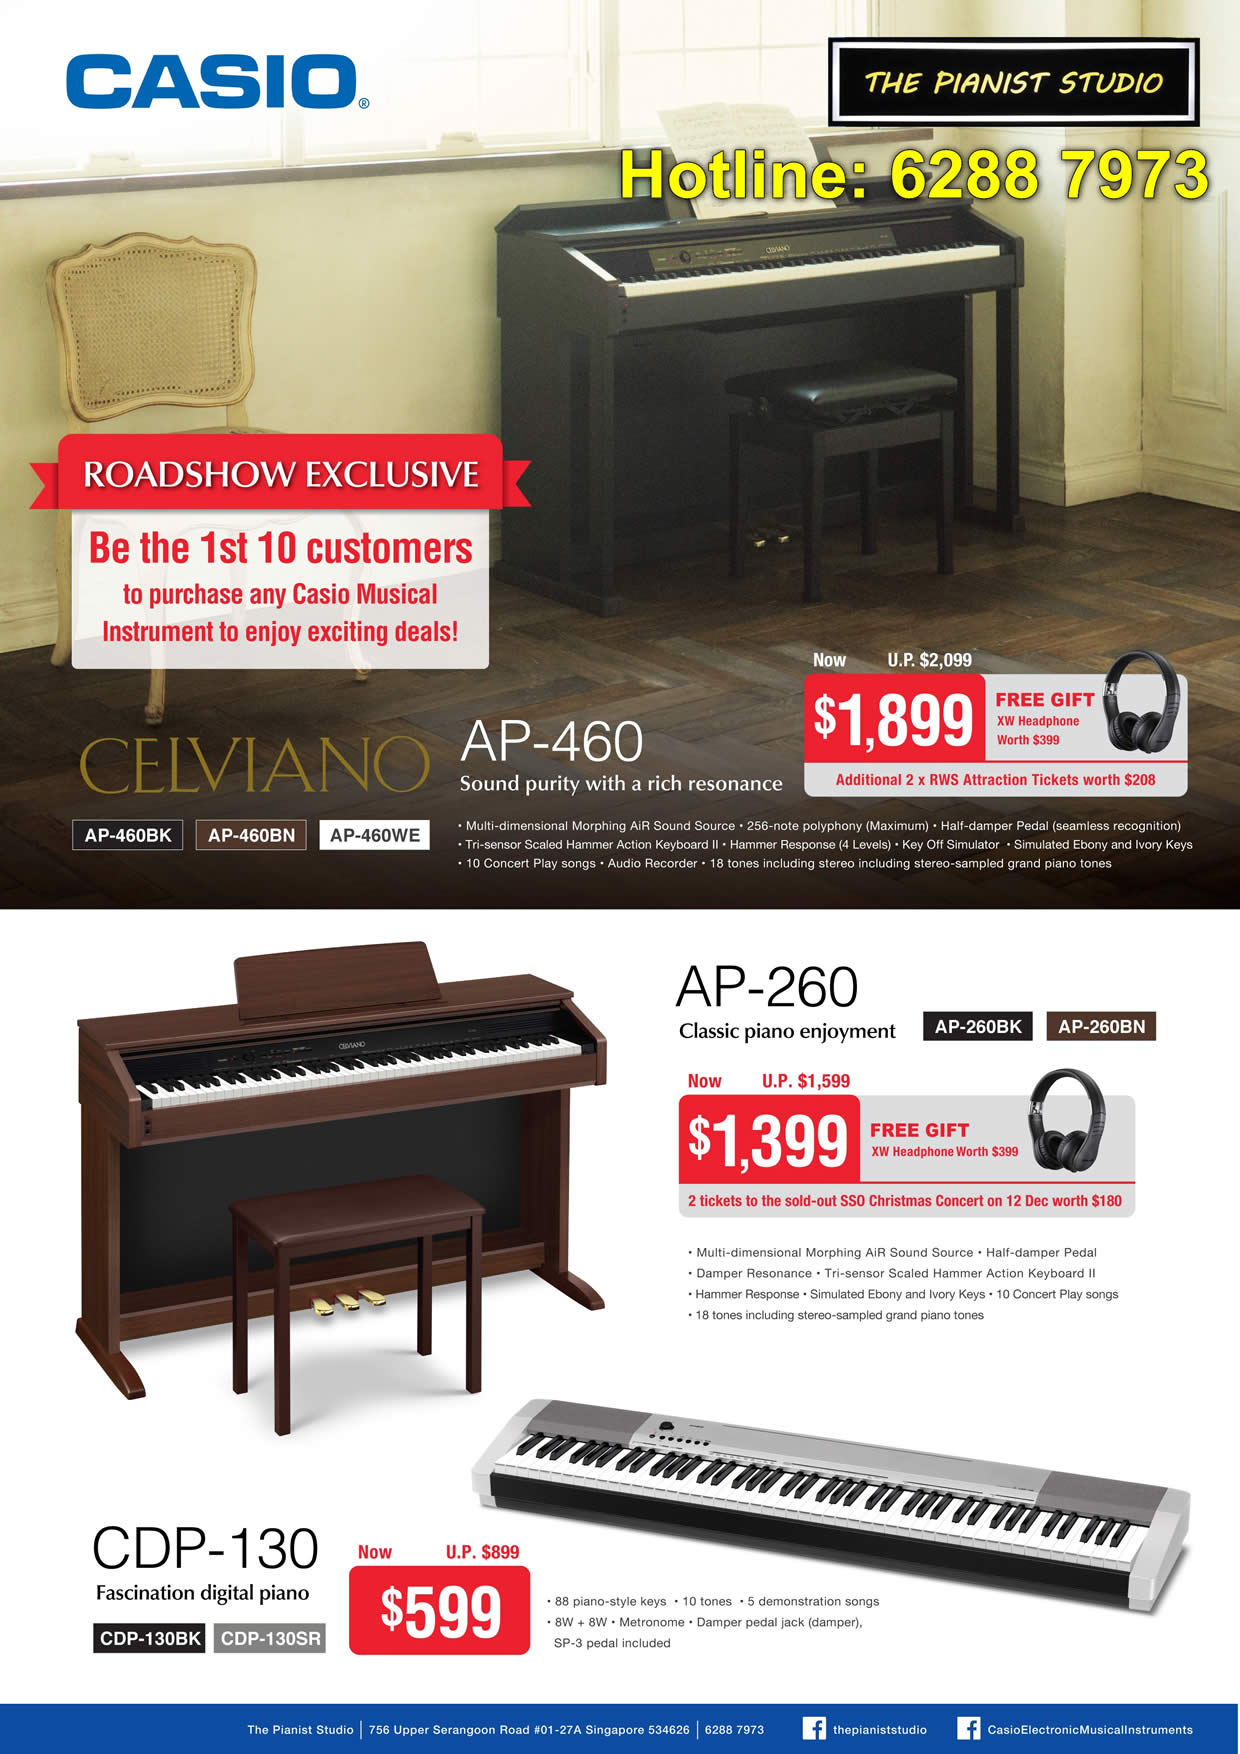 Celviano, AP-460, AP-260 Classic Piano Enjoyment, CDP-130 Fascination Digital Piano